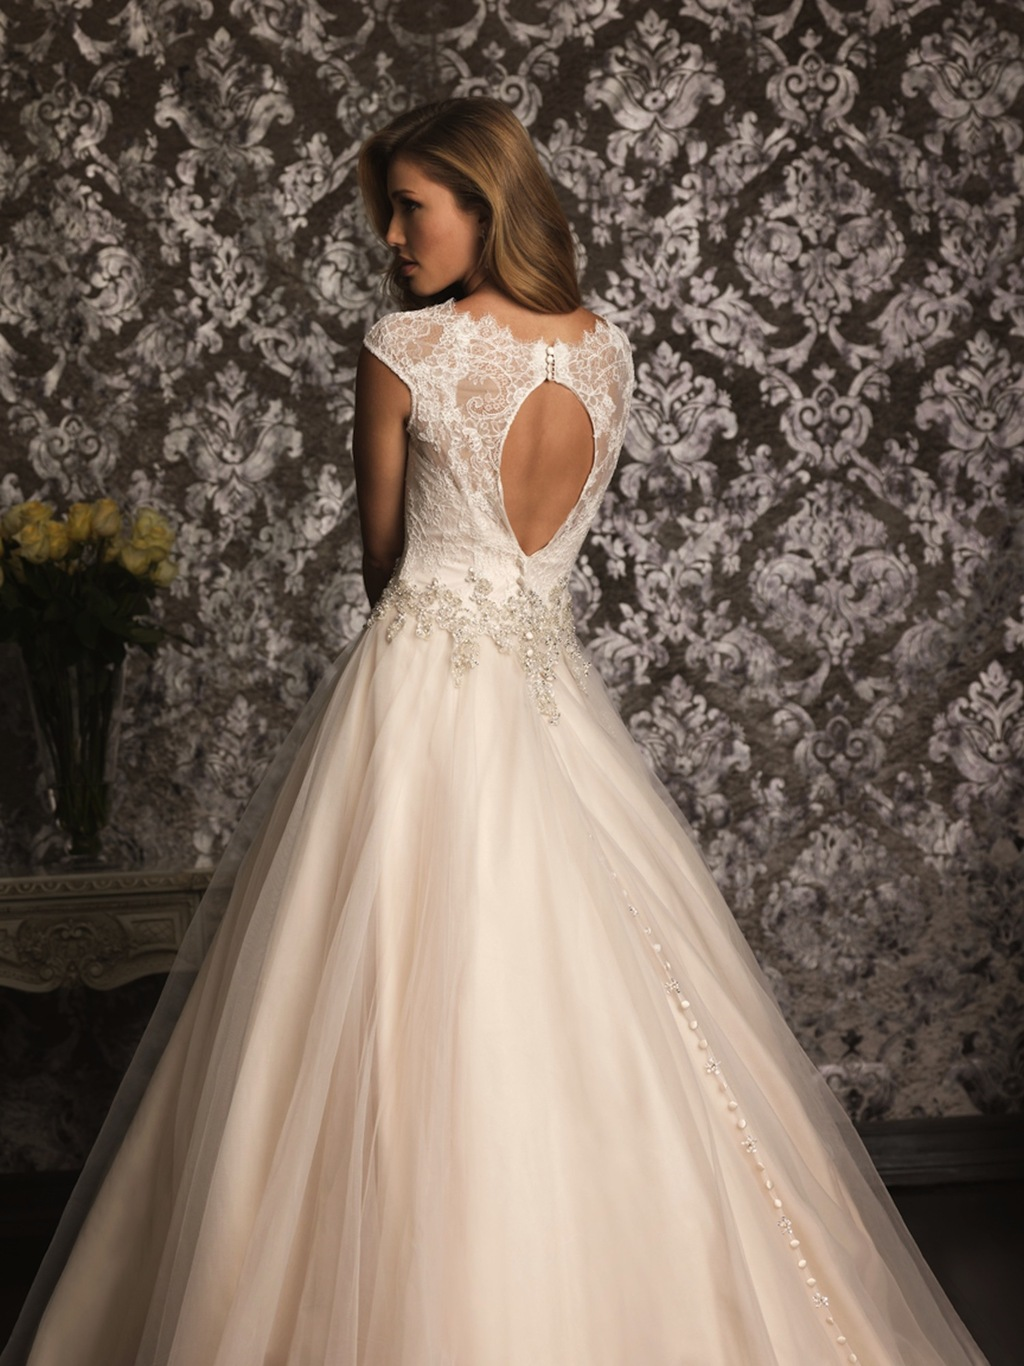 Allure-bridals-wedding-dress-bridal-gown-allure-collection-2013-9022b-2.full